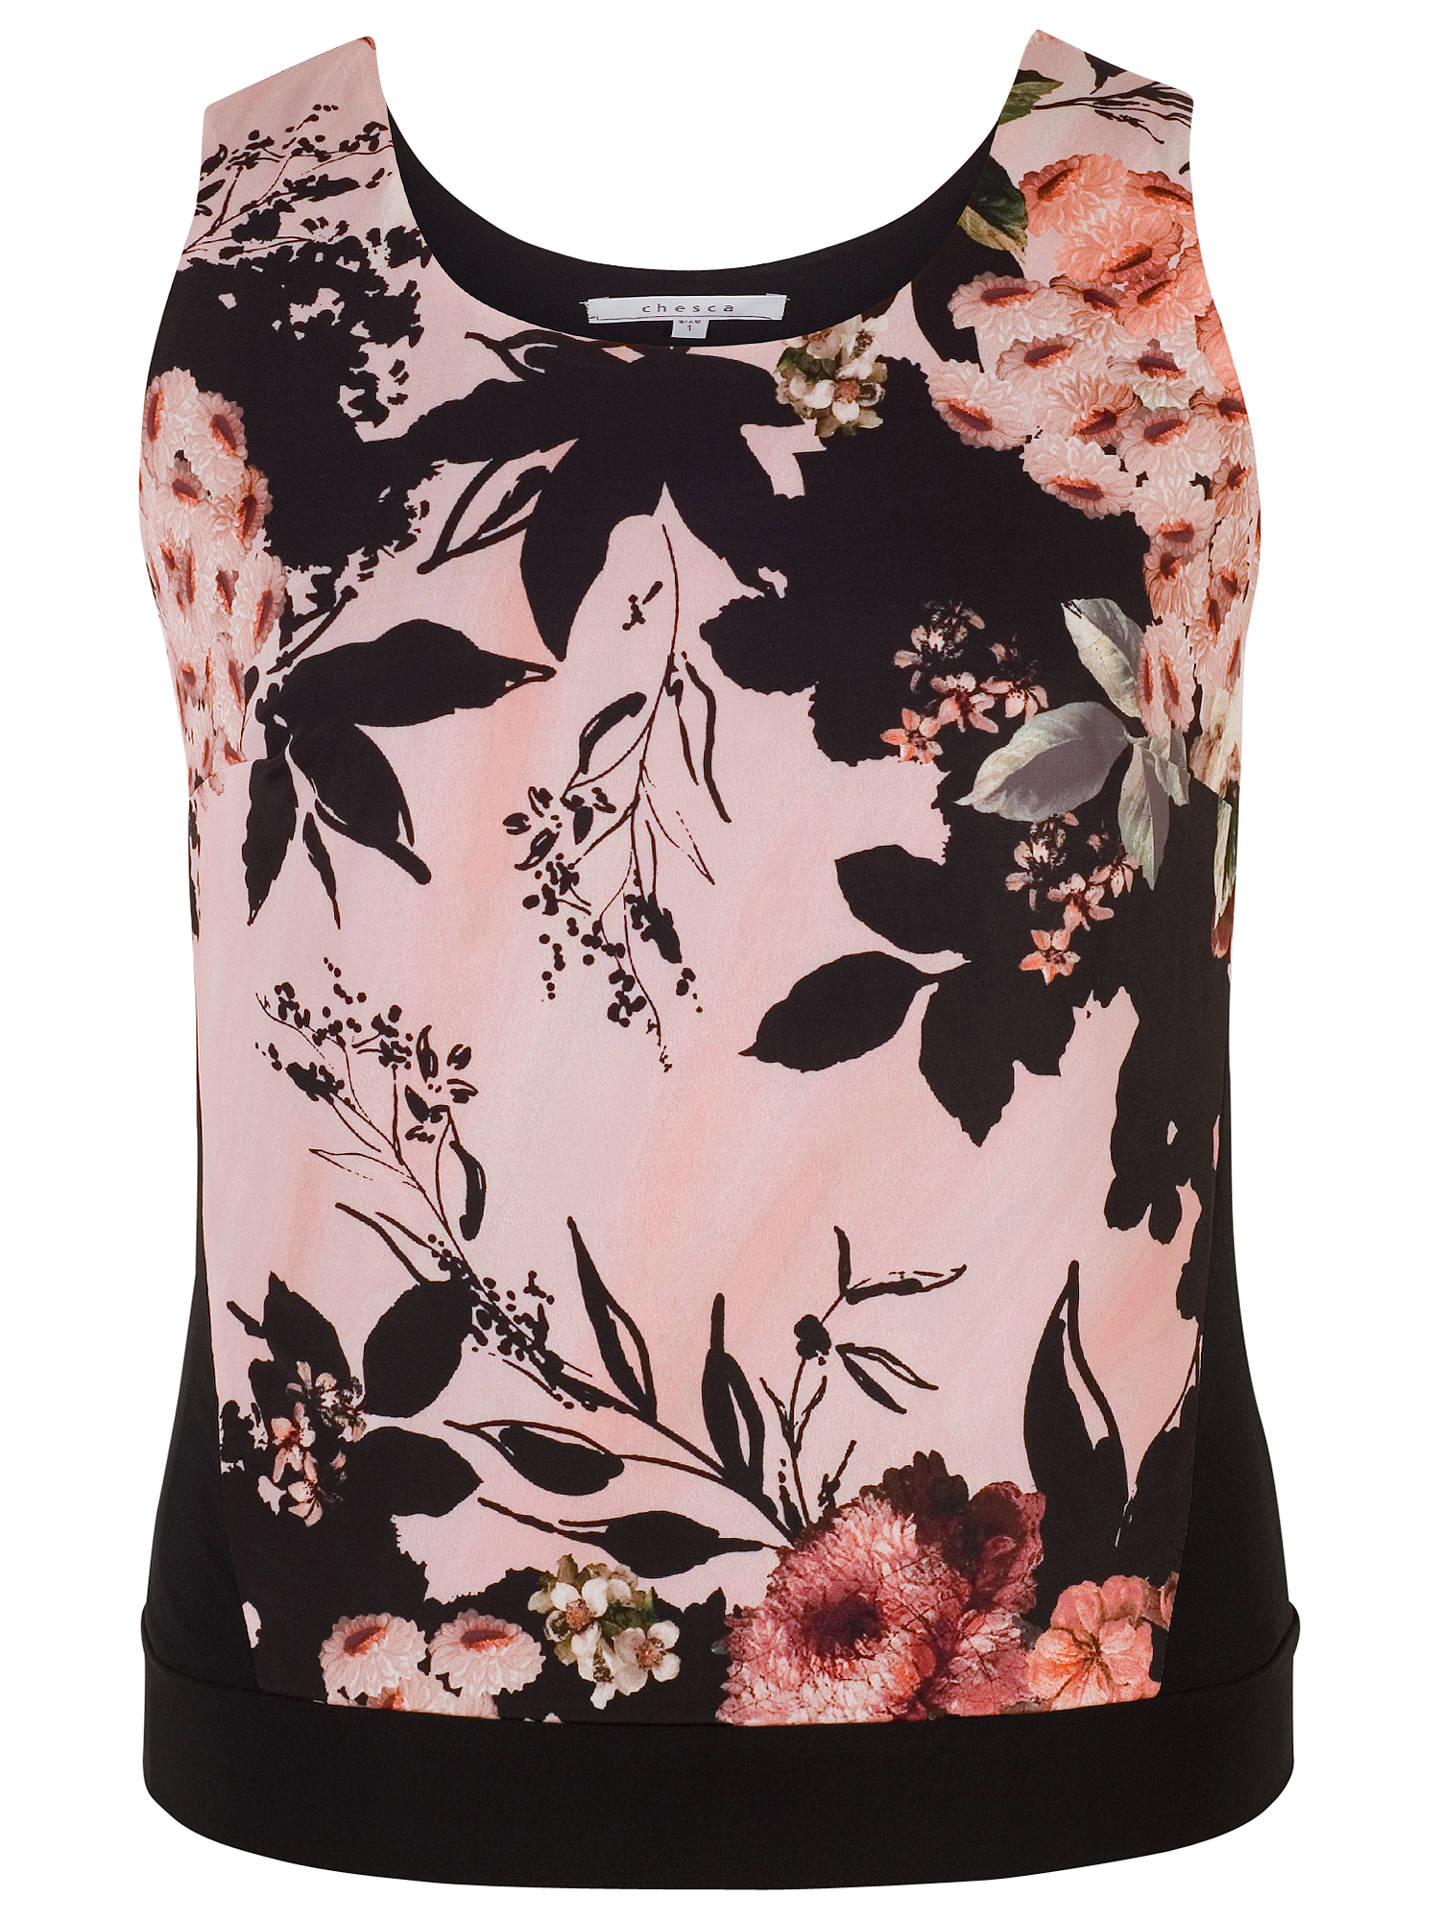 BuyChesca Rose Print Jersey Cami Top, Apricot, 20-22 Online at johnlewis.com